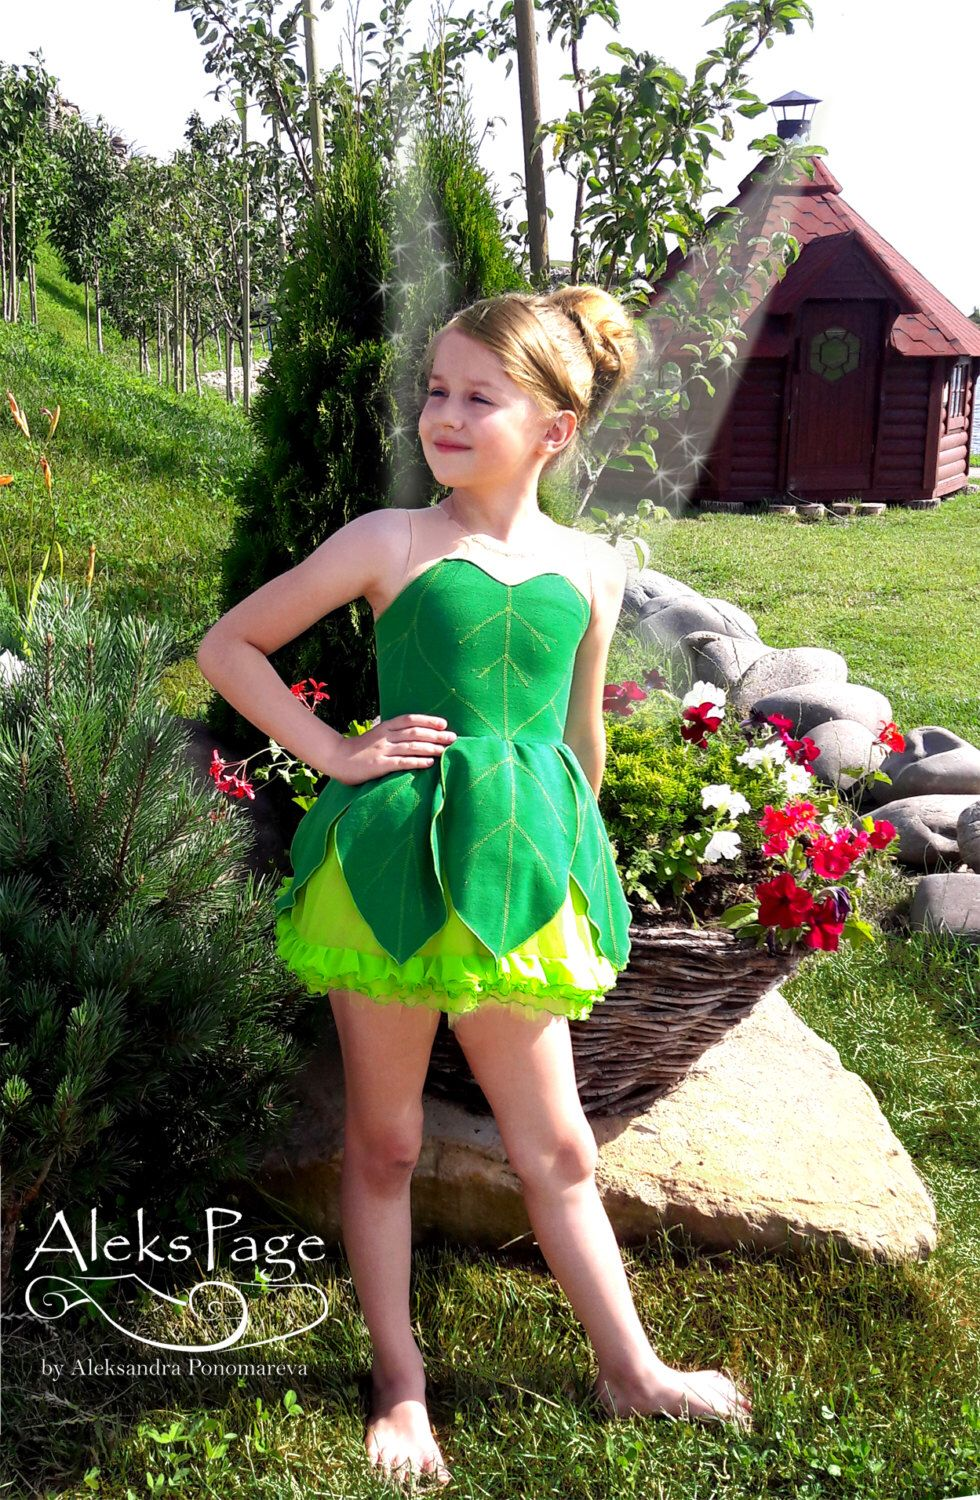 Tinker Bell Fairy Dress, Disney Princess Cosplay Costume, Fantasy Cartoon Gown, Green Outfit for girl, Halloween by AleksPage on Etsy https://www.etsy.com/listing/278331186/tinker-bell-fairy-dress-disney-princess